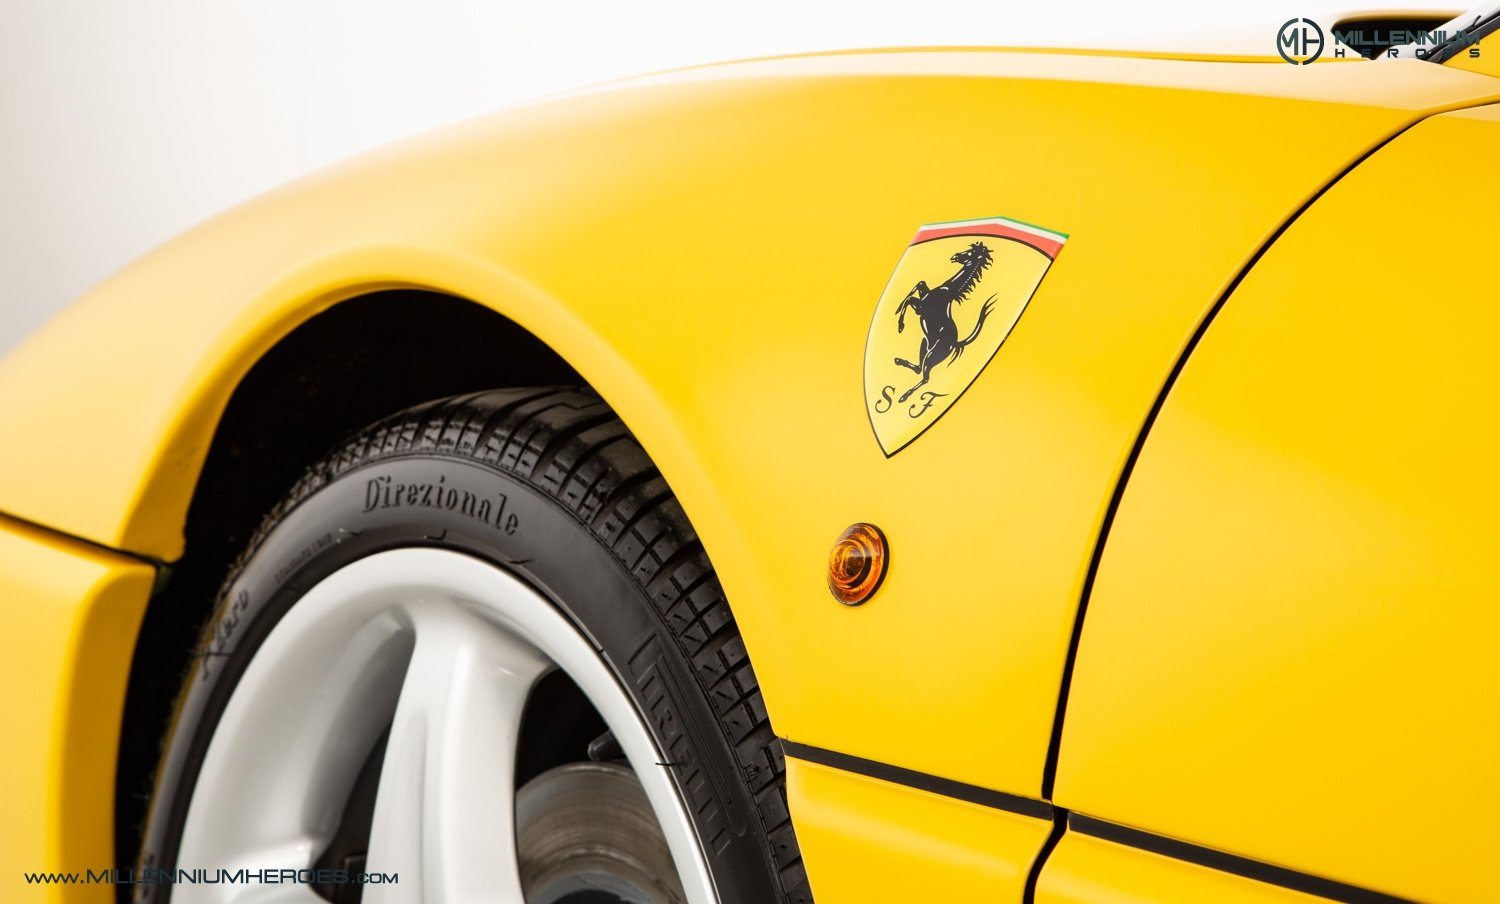 1997 FERRARI F355 SPIDER // 6 SPEED MANUAL // UK RHD // FSH For Sale (picture 6 of 22)